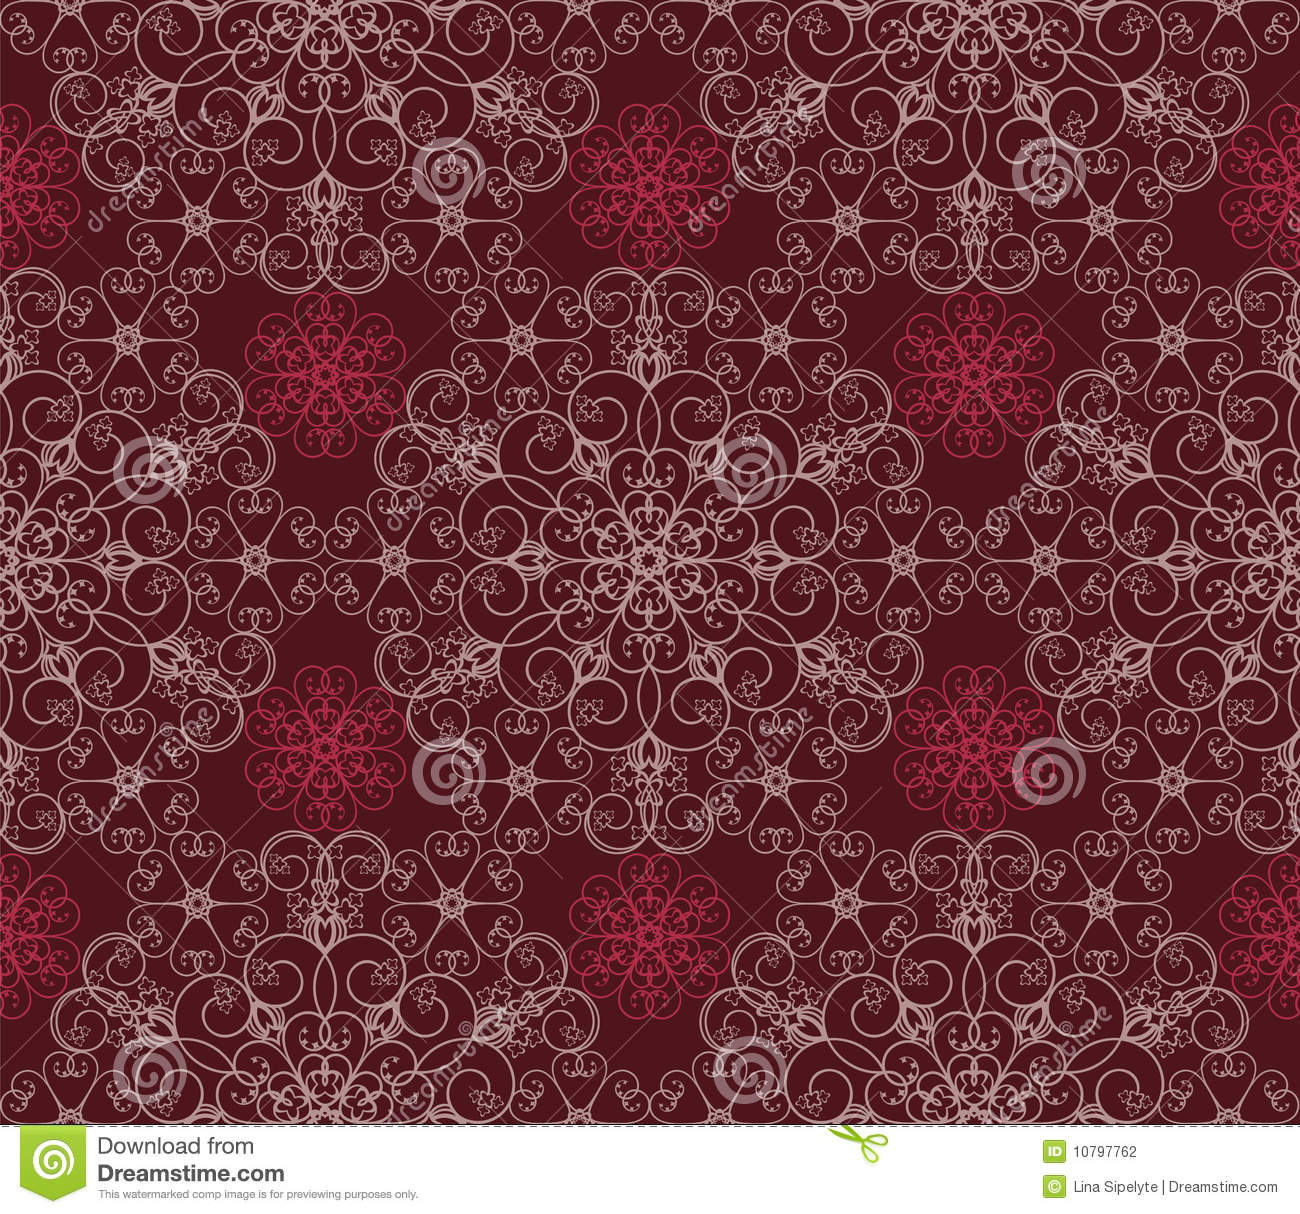 Maroon Floral Seamless Wallpaper Pattern Stock Vector